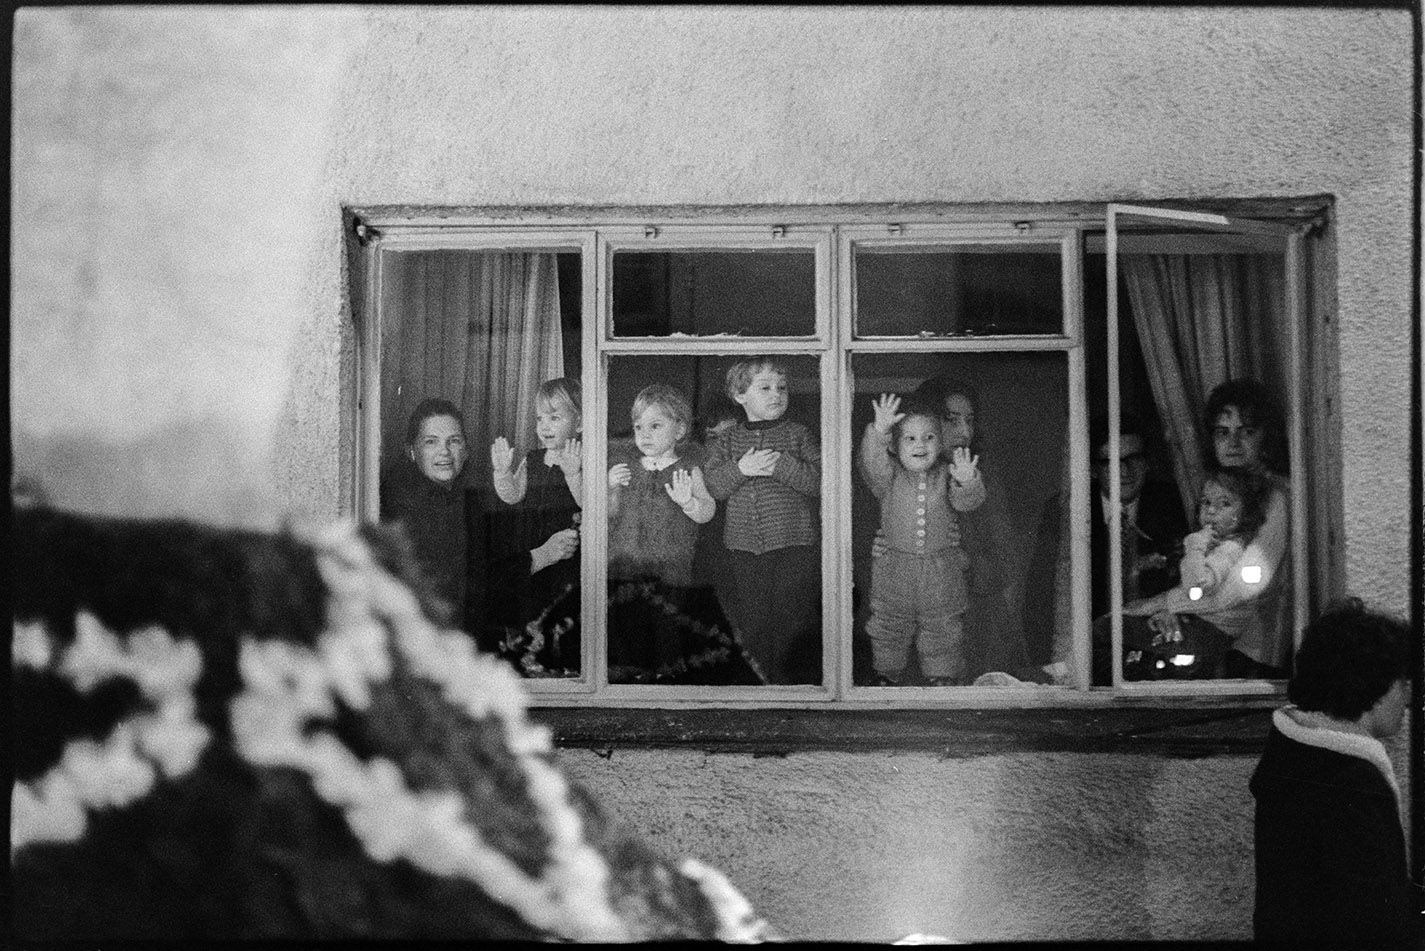 People watching night procession from window, Hatherleigh, 6 November 1974